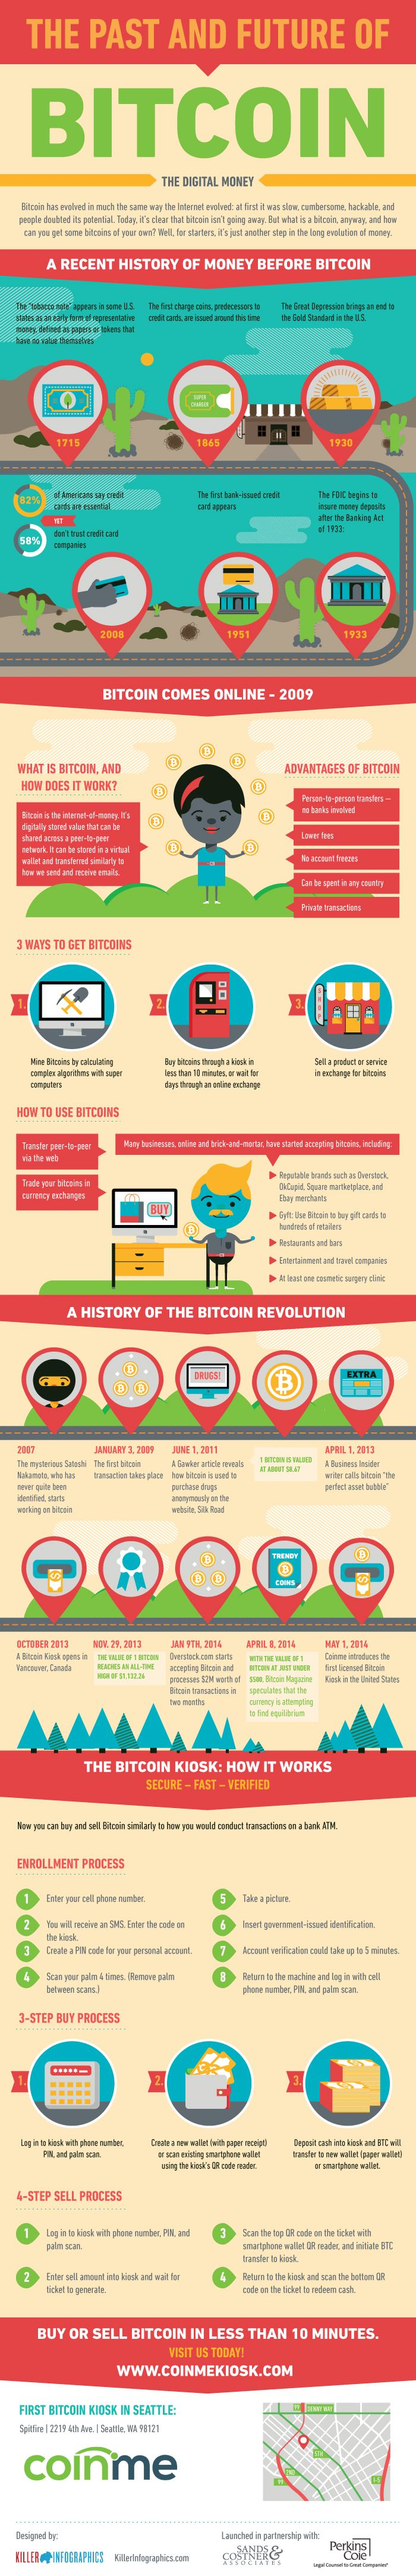 The Past And Future Of Bitcoin [infographic]